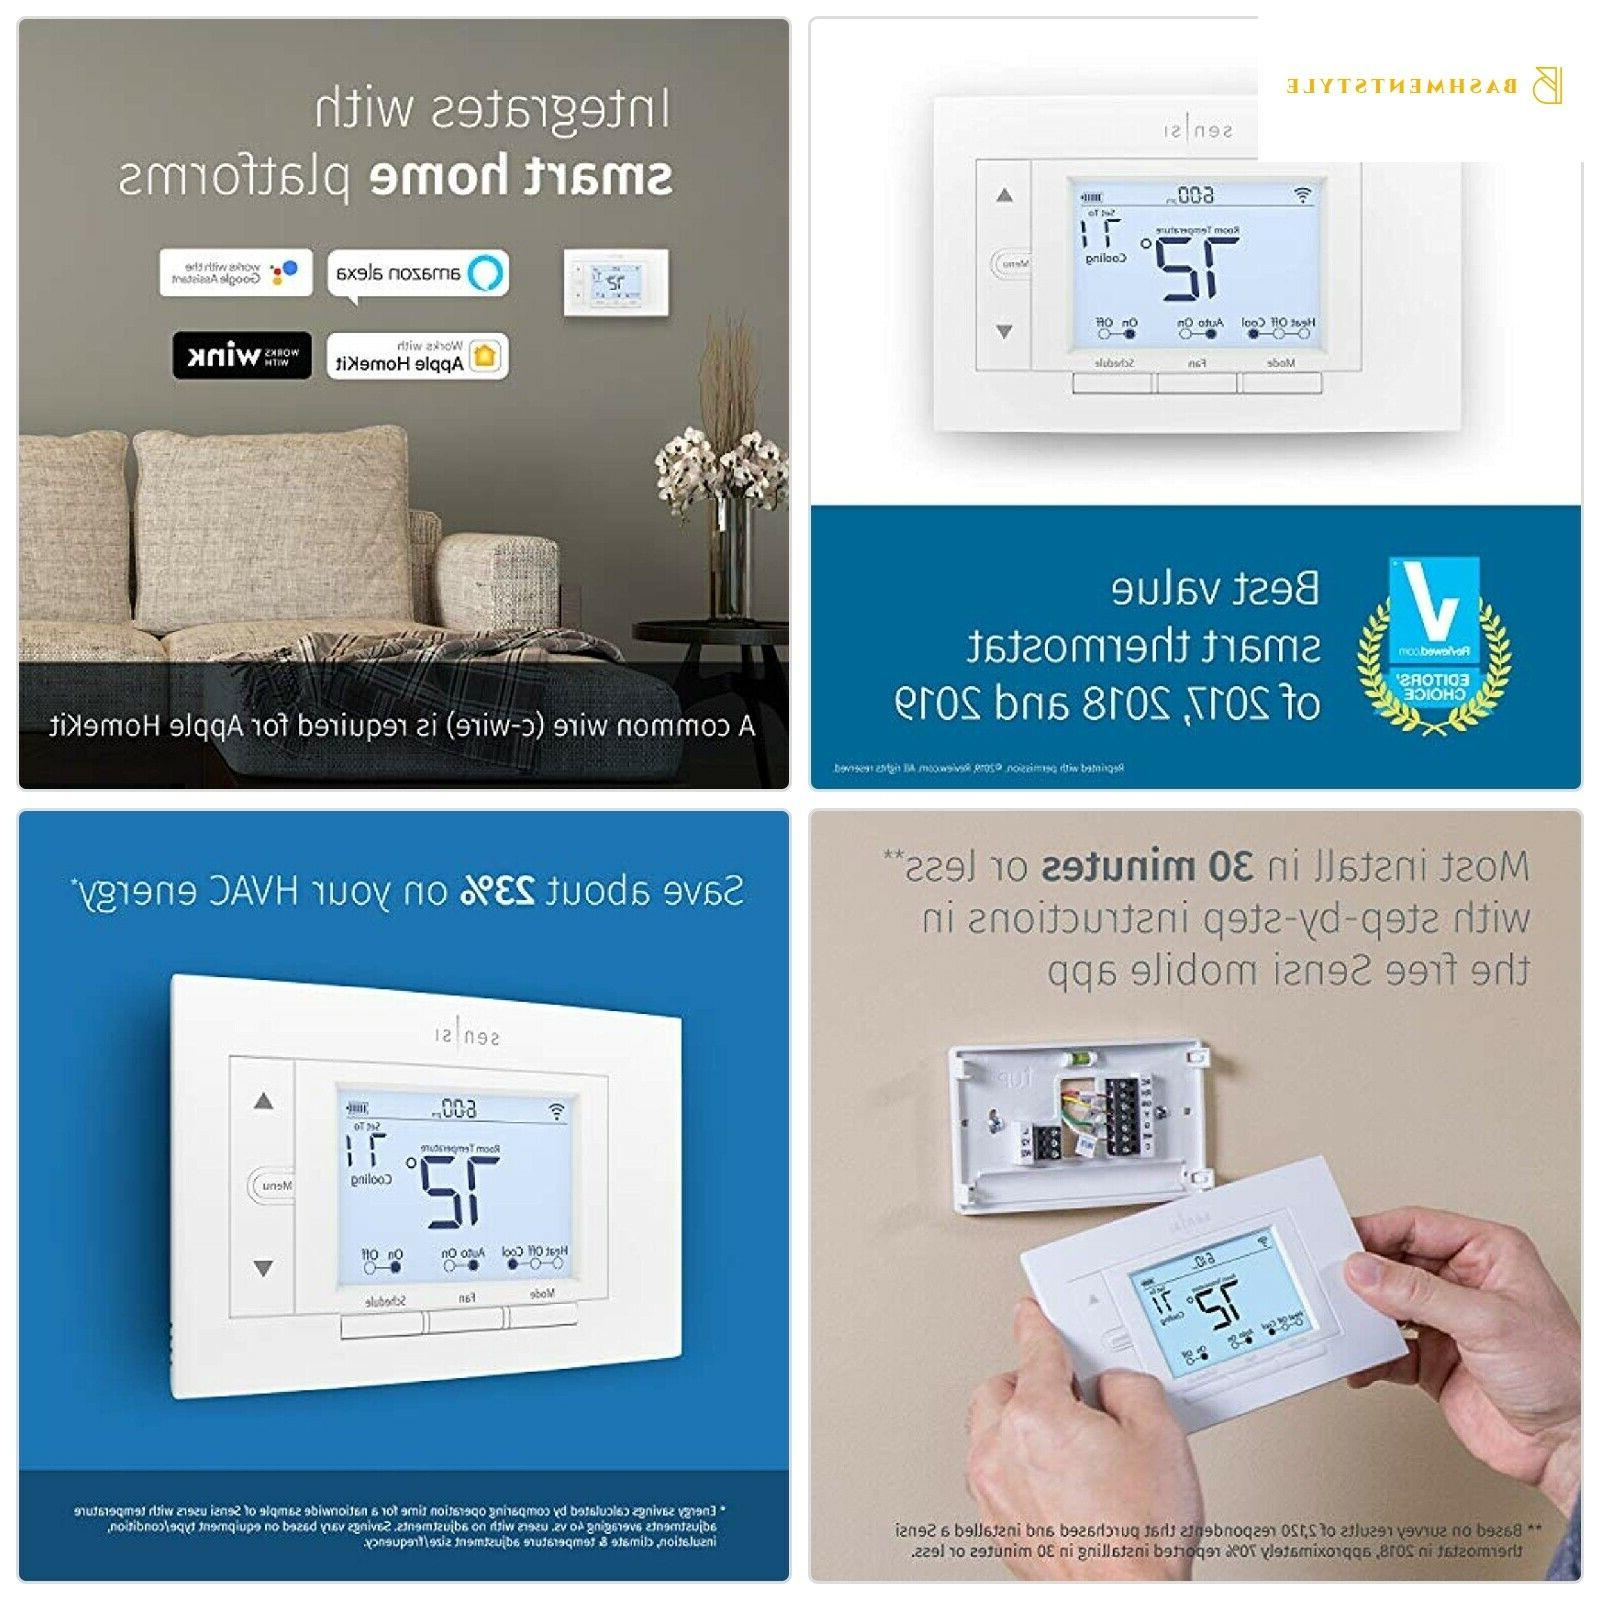 Emerson SENSI Wi-Fi Thermostat for Smart Home 1F86U-42WF by